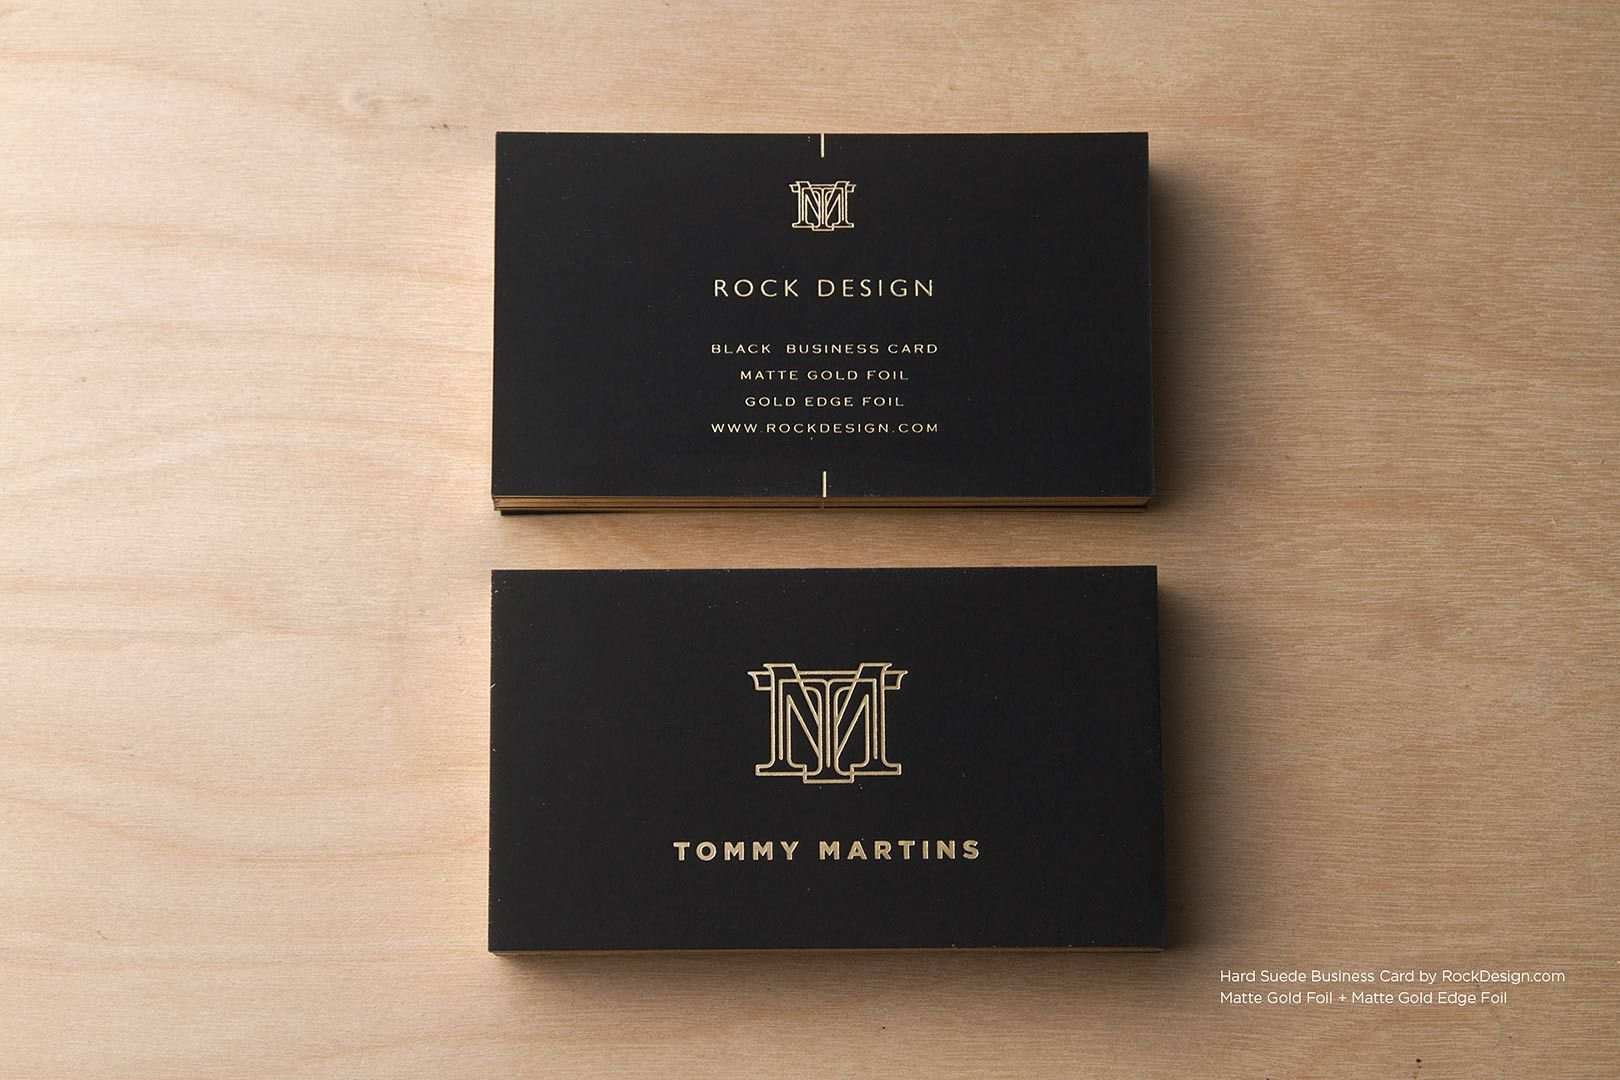 Hard suede business cards rockdesign luxury business for Luxurious business cards